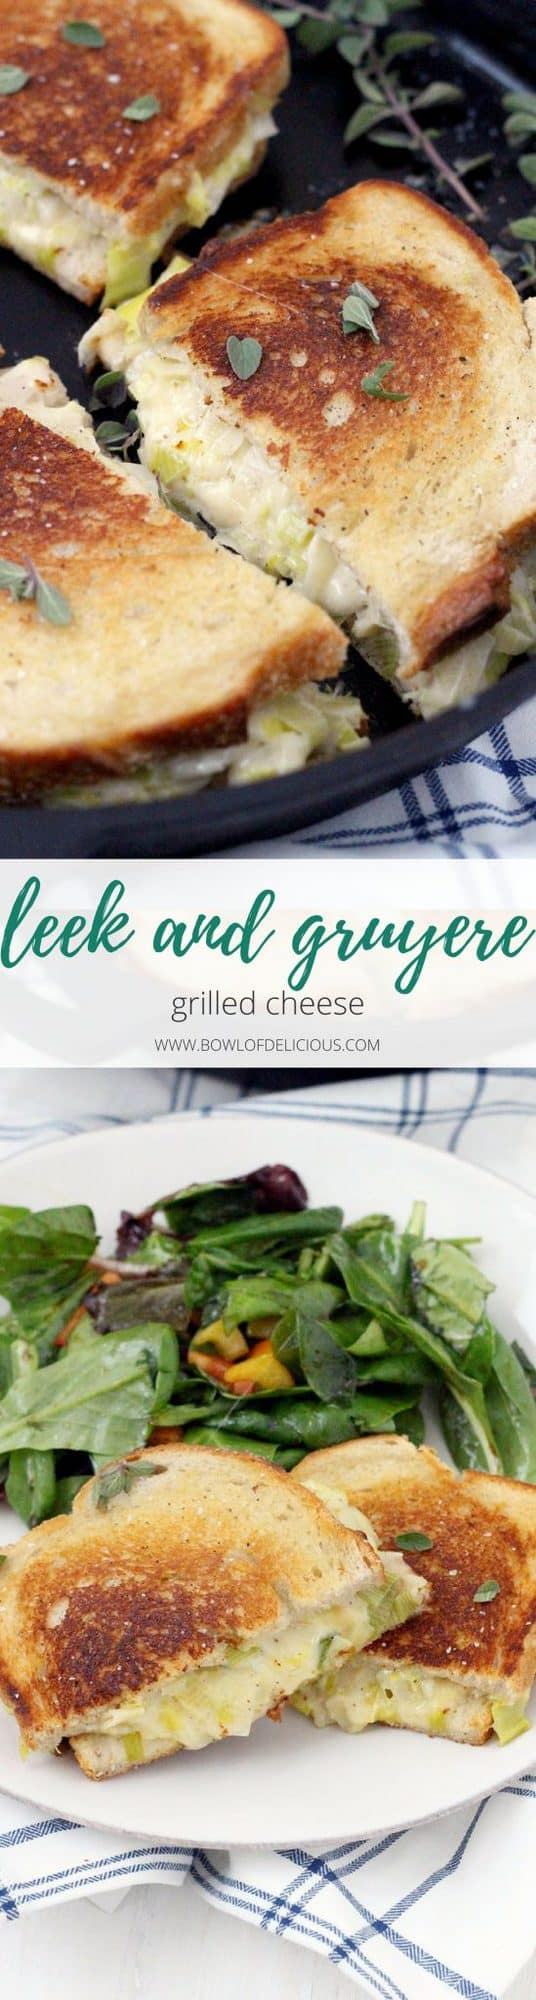 This Leek and Gruyere Grilled Cheese recipe is rich and buttery. Every bite is infused with perfectly melted cheese and that subtle, savory, onion flavor leeks are known for. The perfect easy weeknight dinner with a simple salad or light soup!